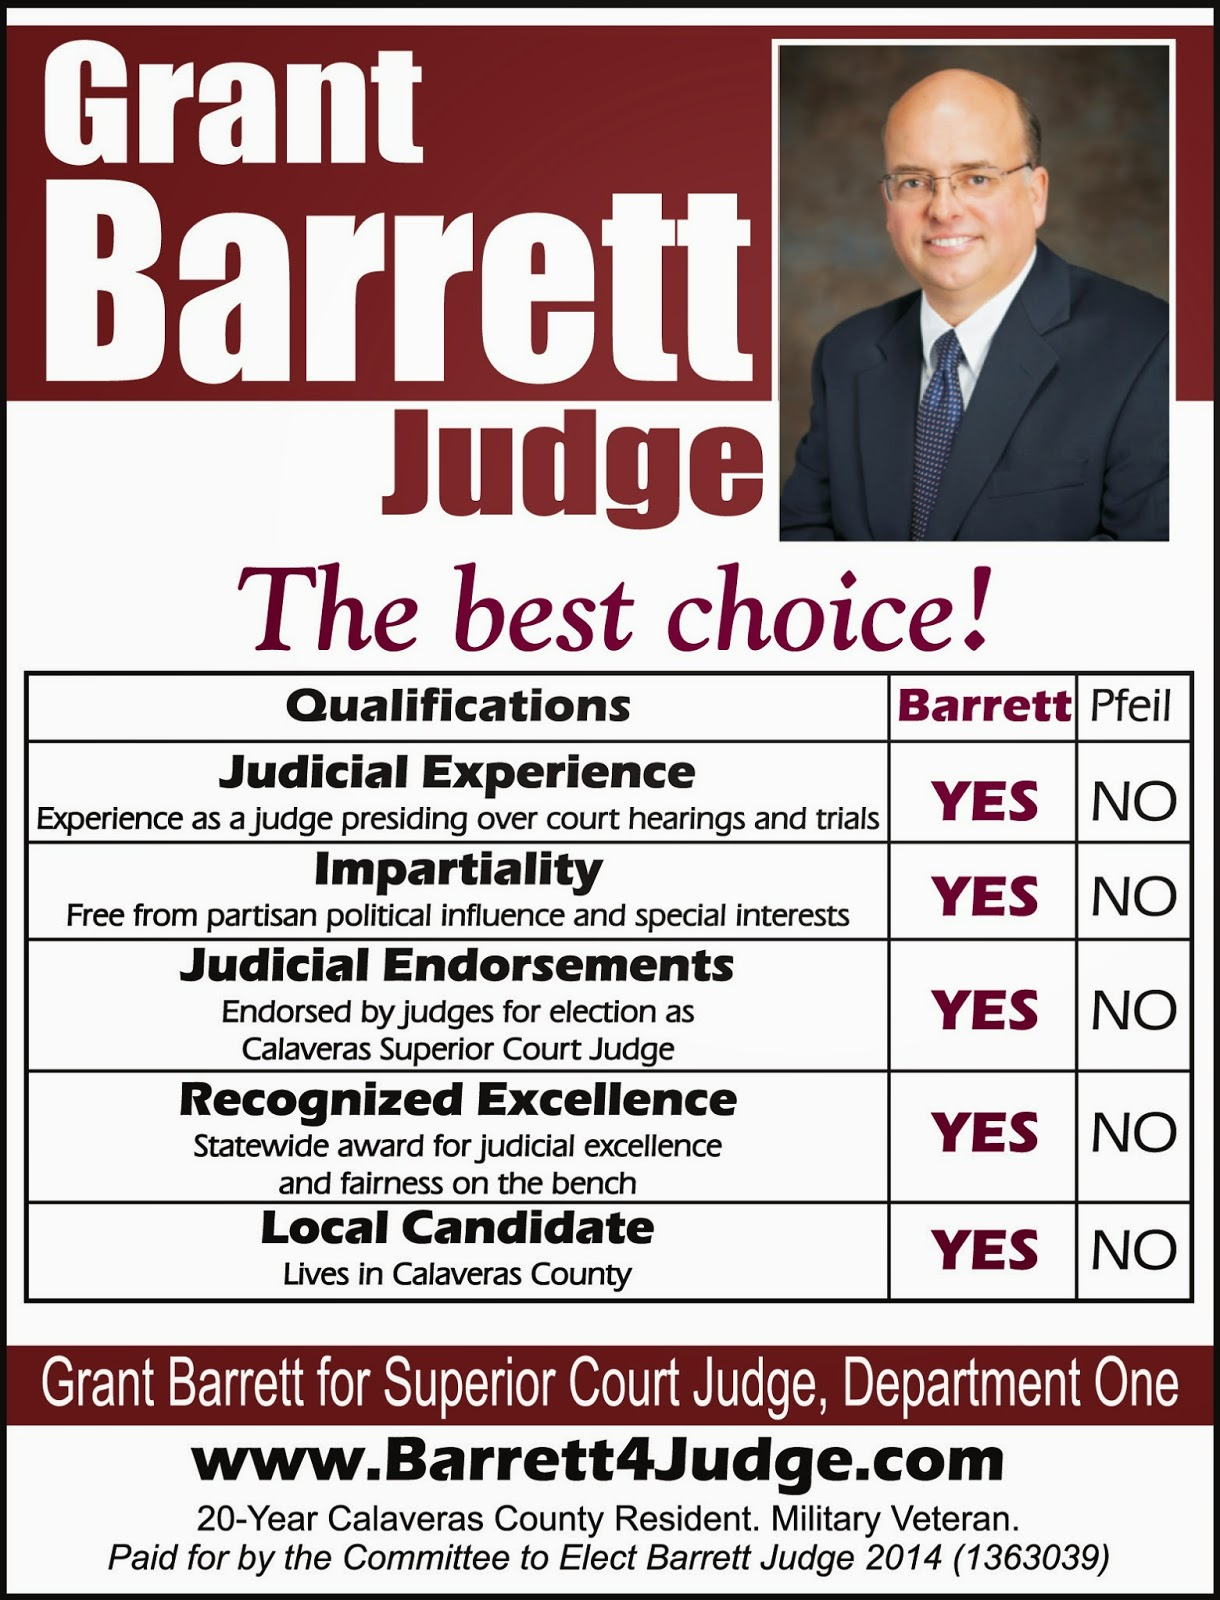 http://www.barrett4judge.com/